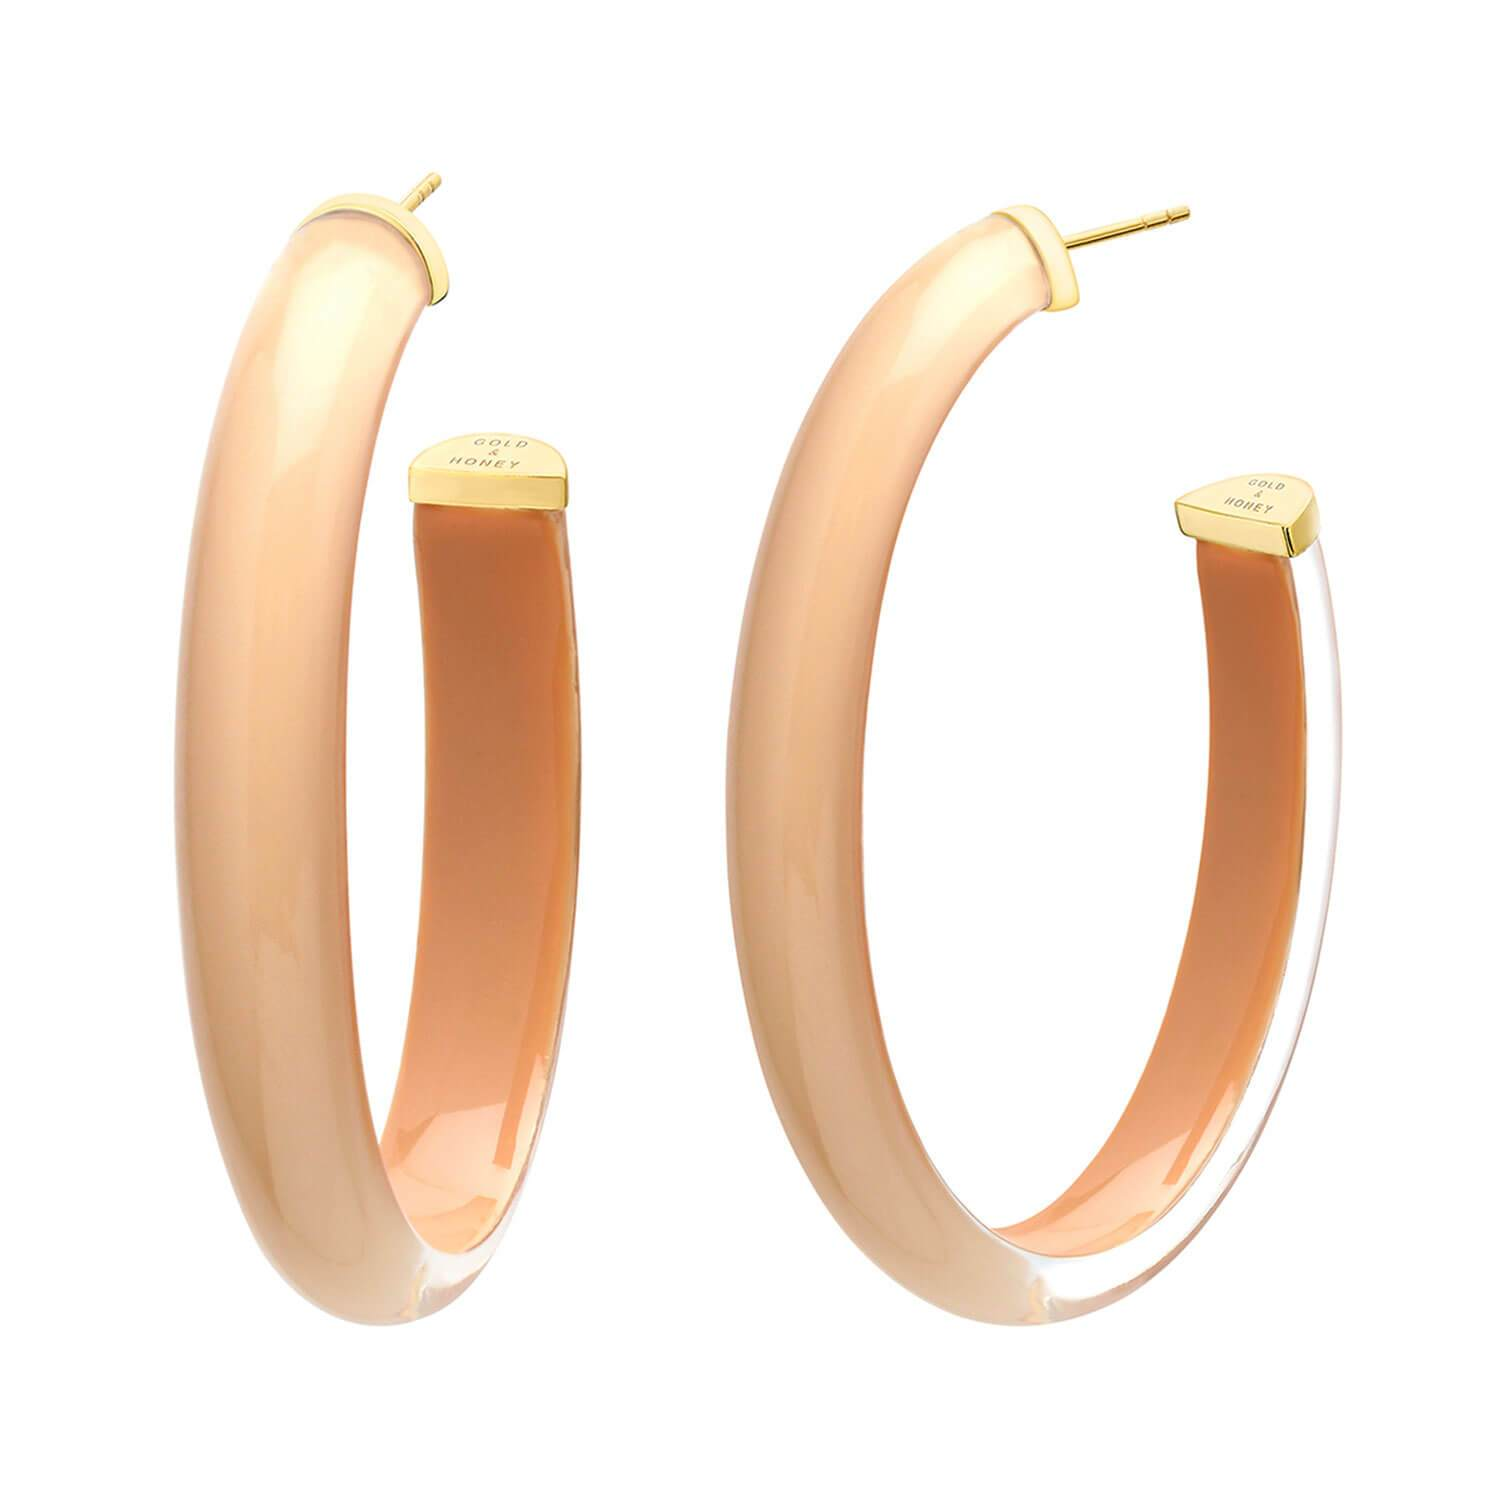 XL Oval Illusion Nude Lucite Hoops - NUDE4